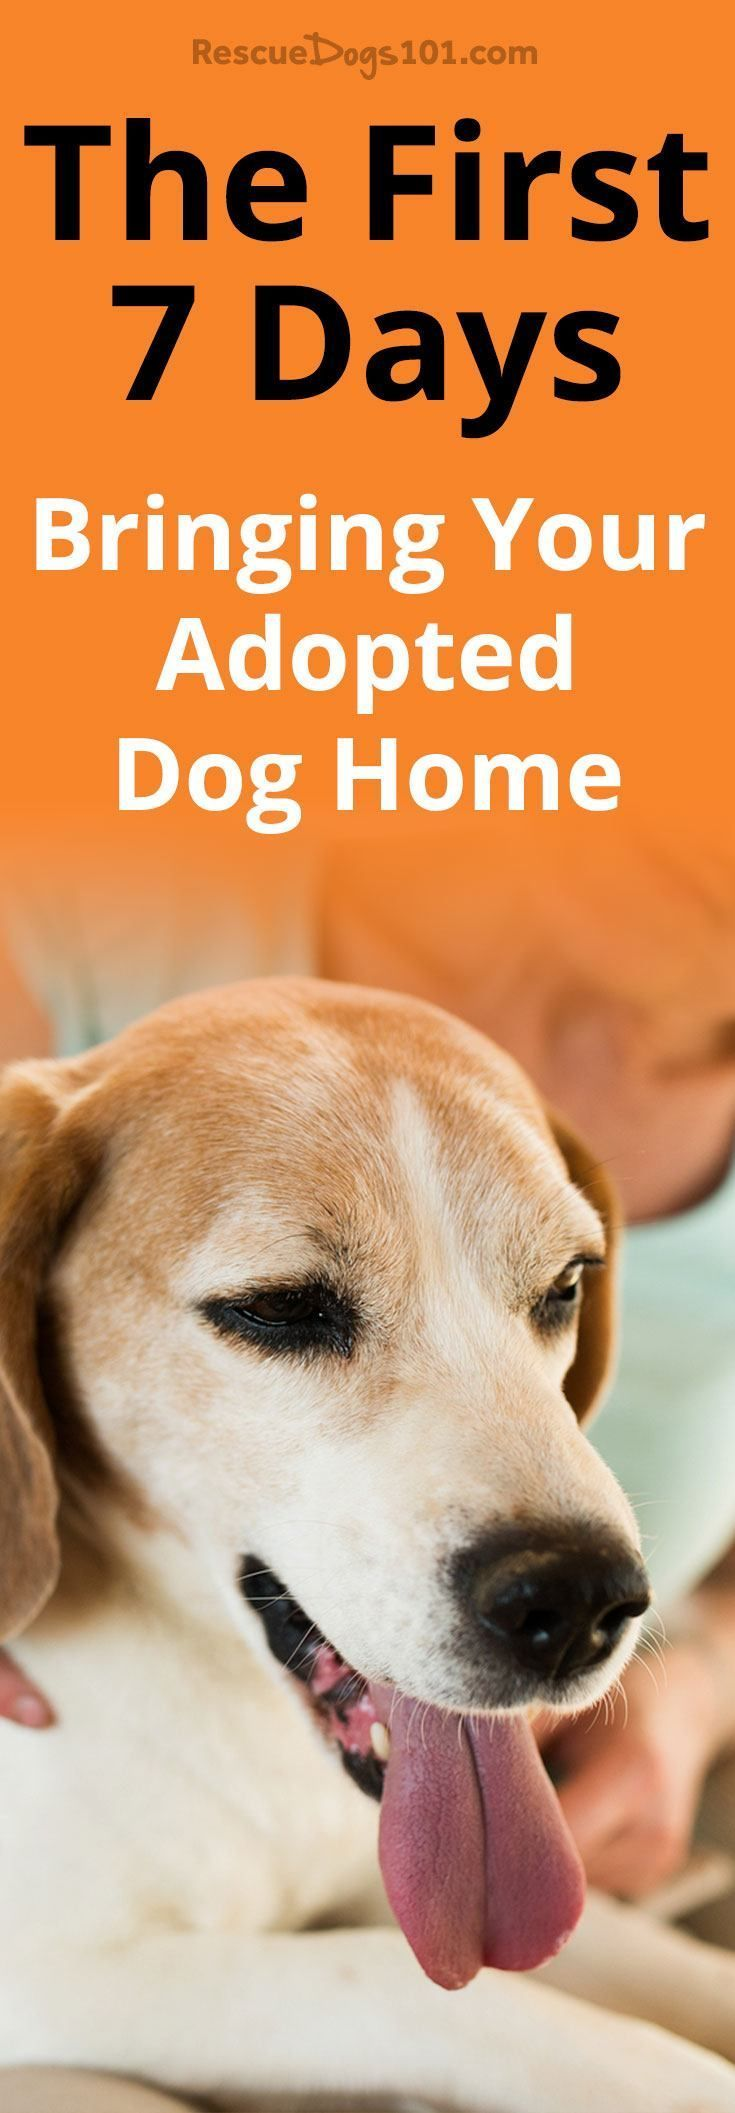 The First 7 Days Bringing Your Adopted Dog Home Dogs